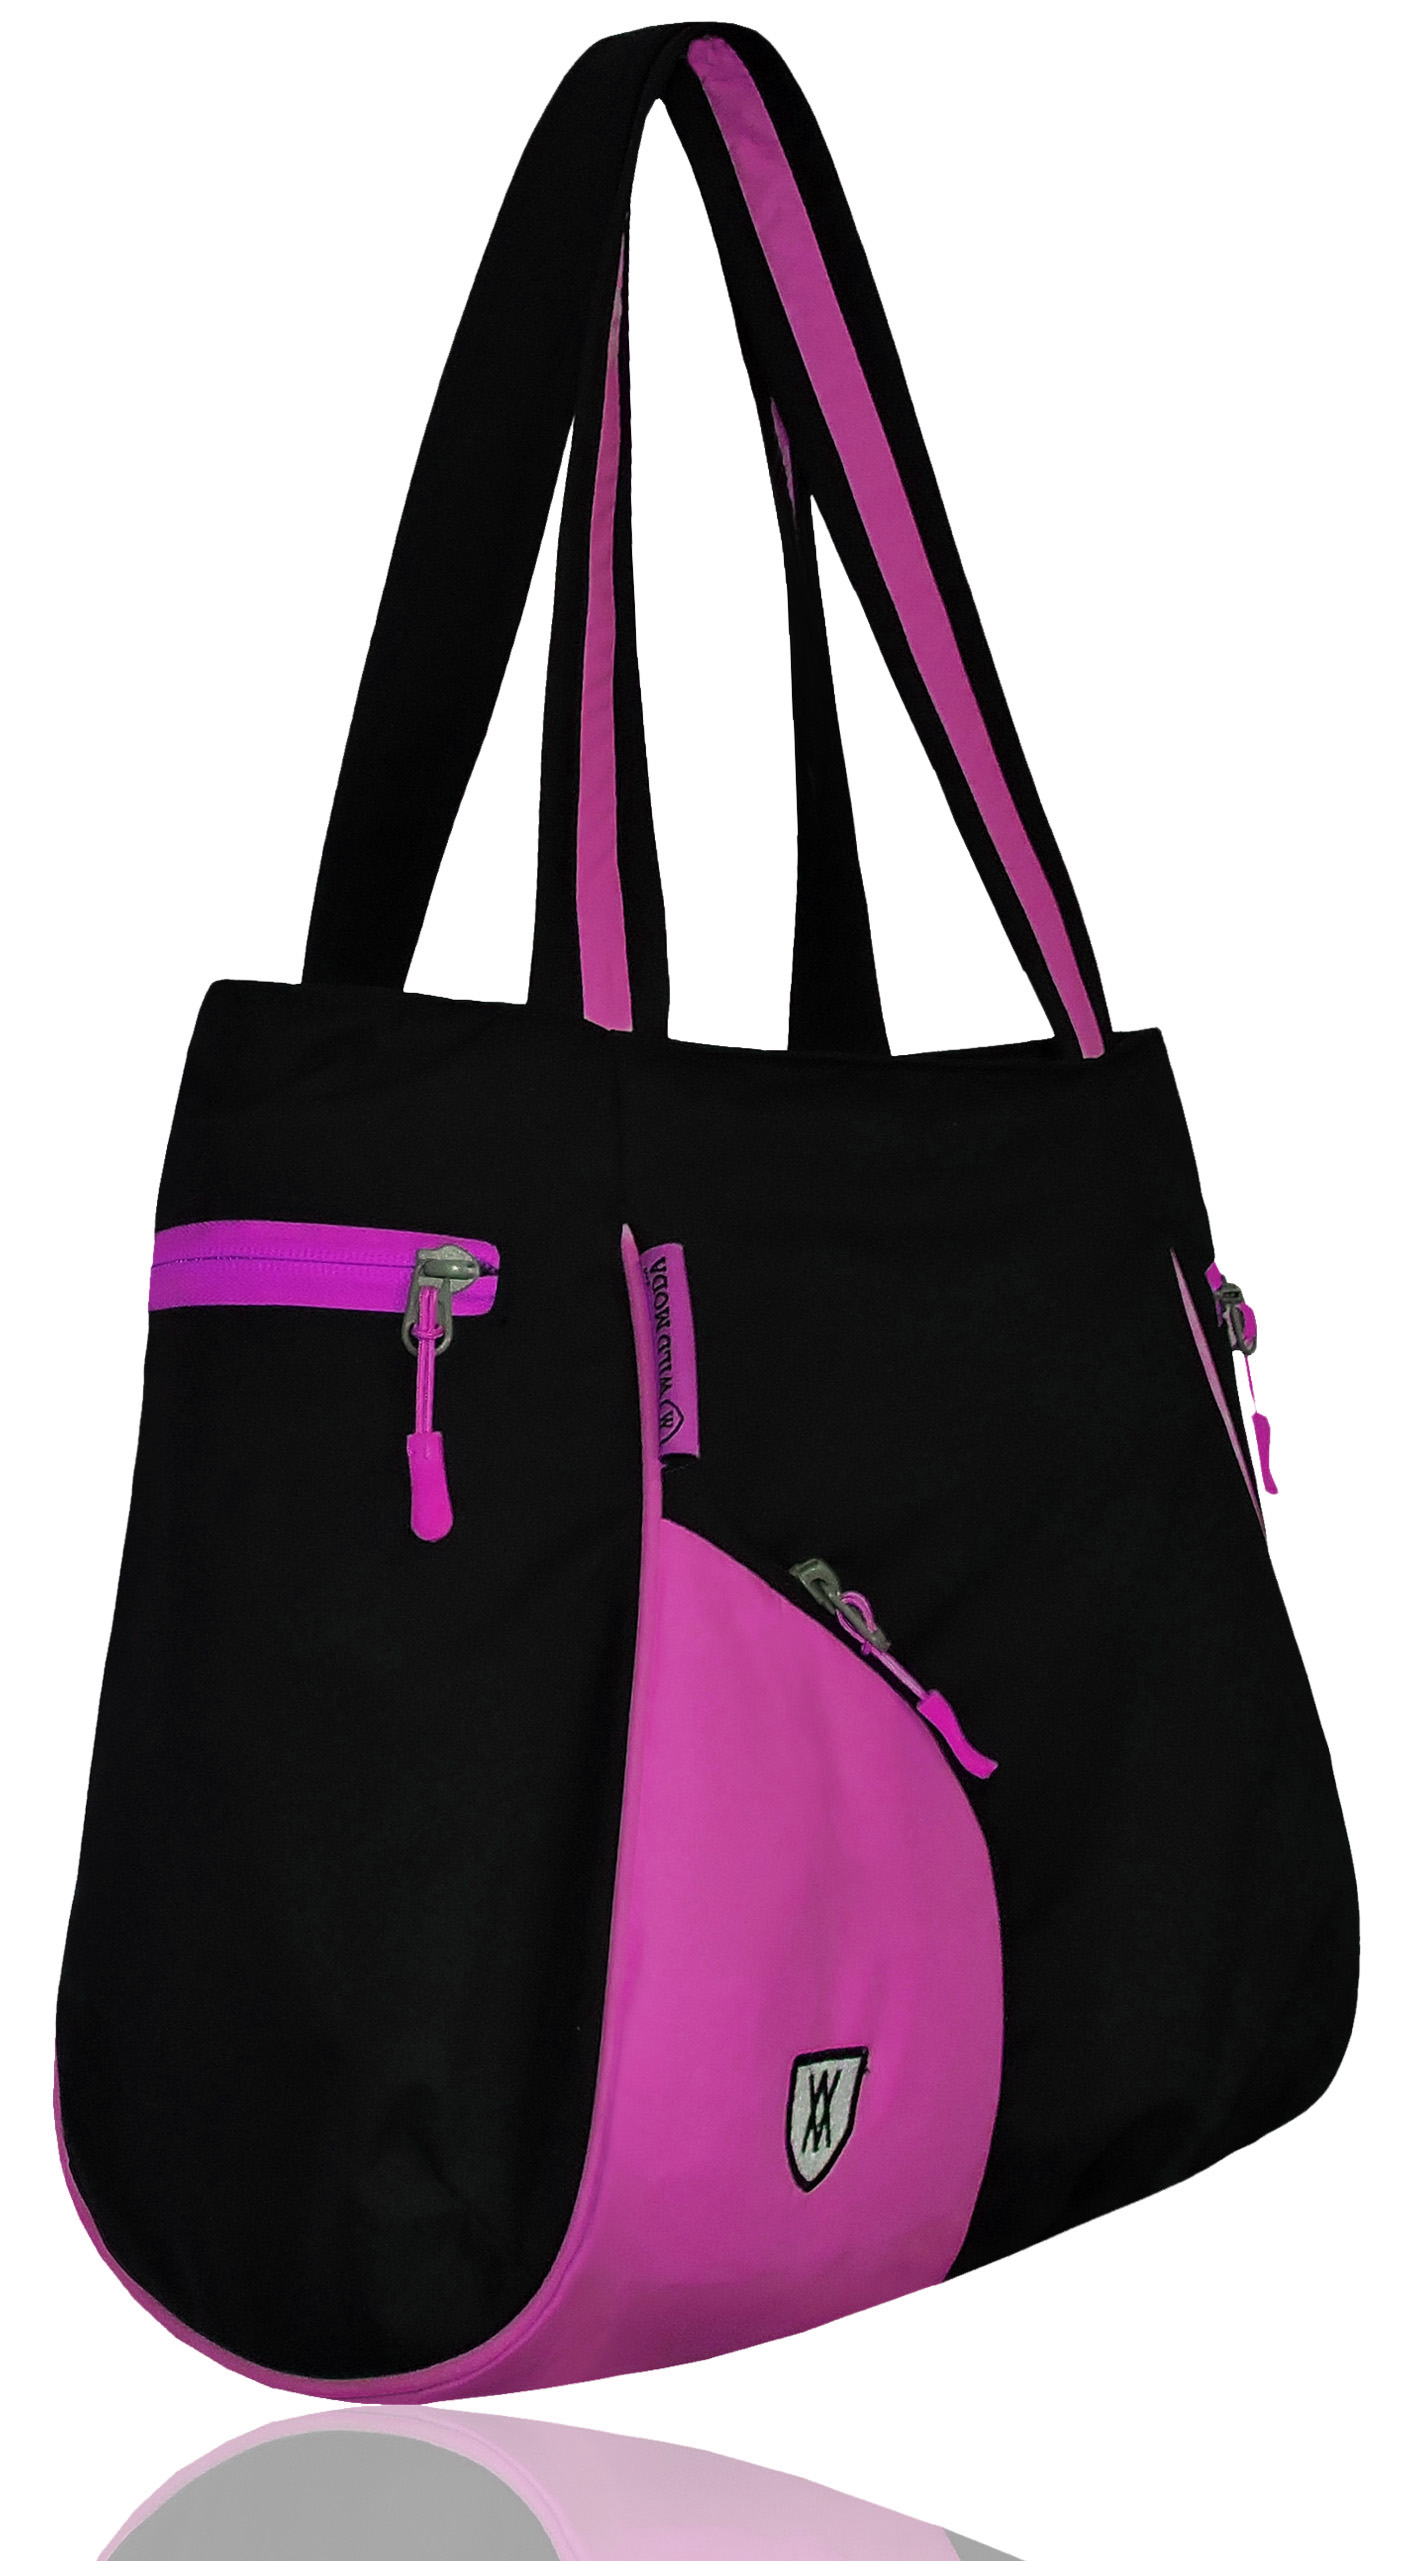 Wildmoda Women Black, Pink Tote